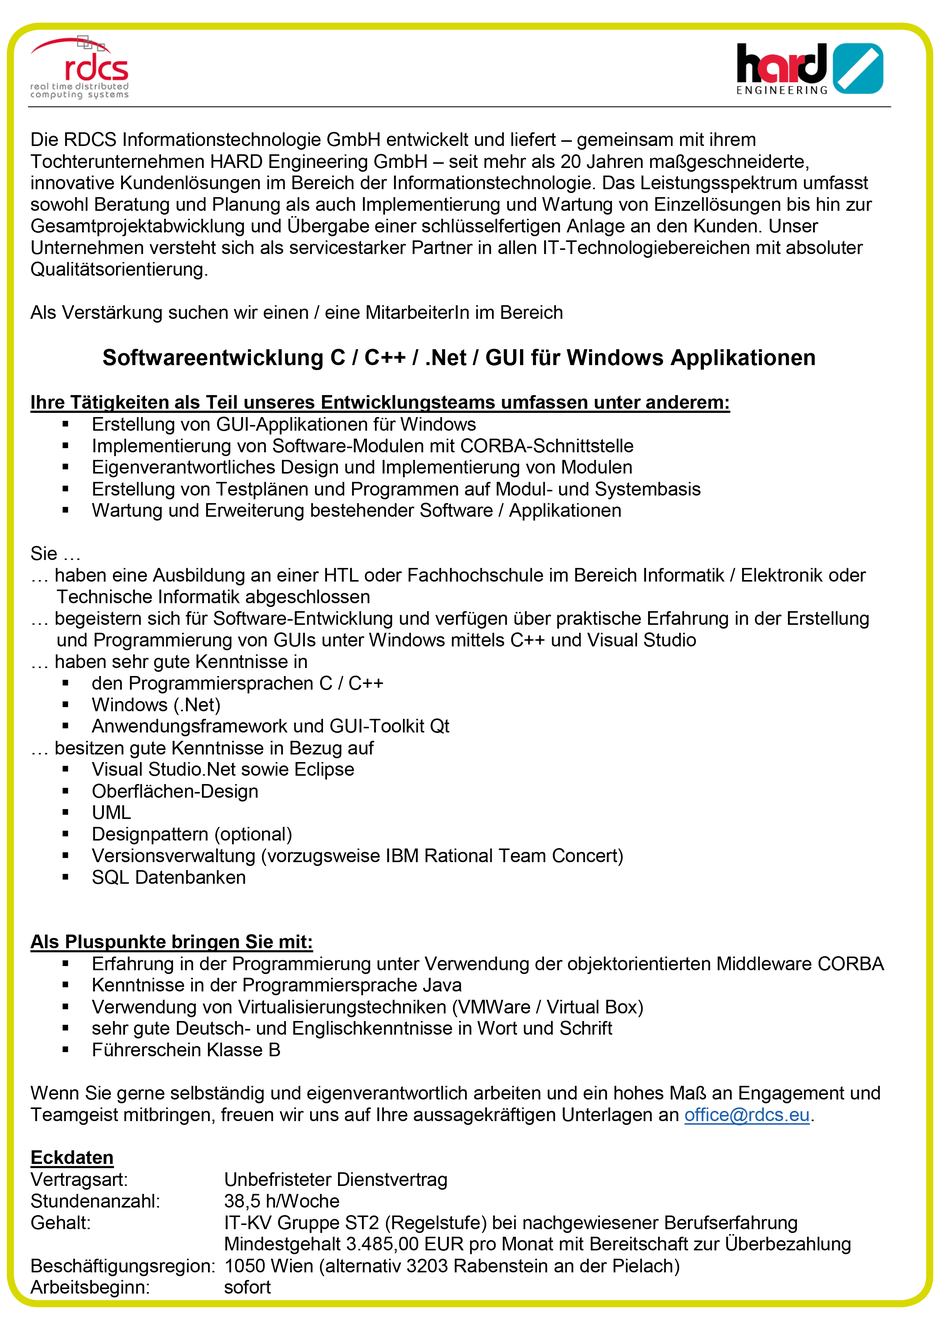 Software Developer Jobs - Softwareentwickler C/C#/.NET - RDCS - Wien - 1